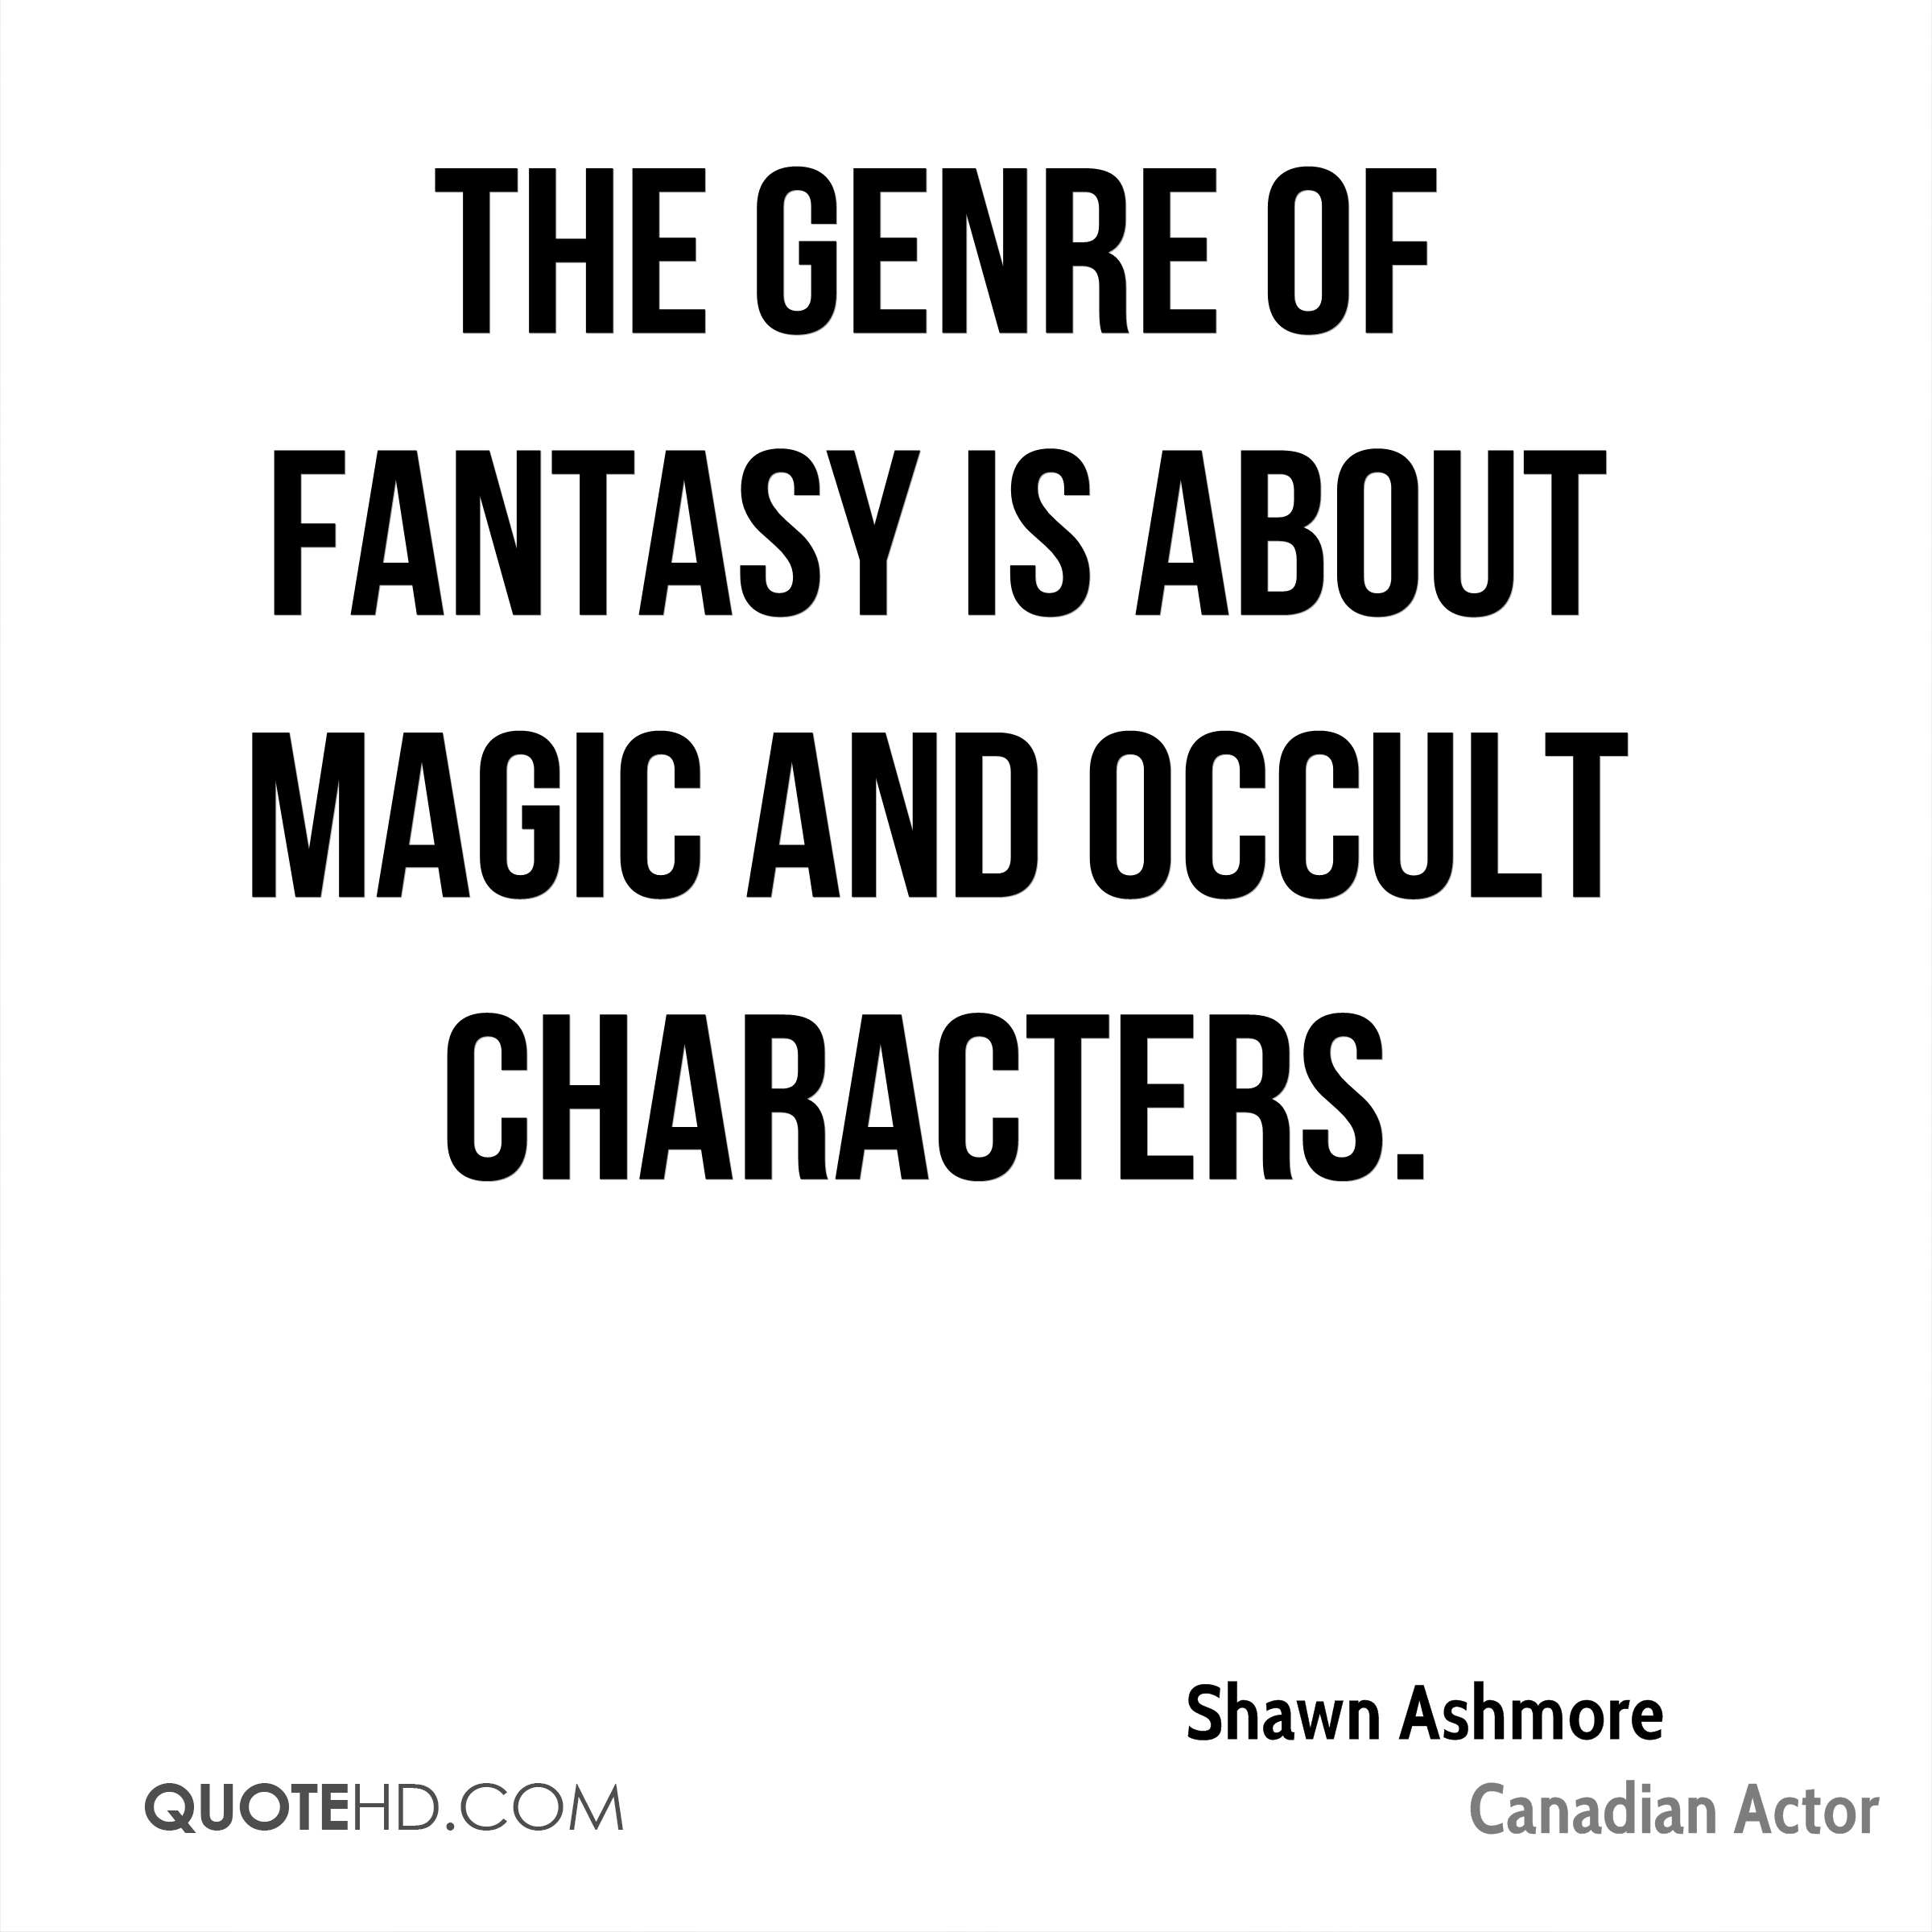 The genre of fantasy is about magic and occult characters.